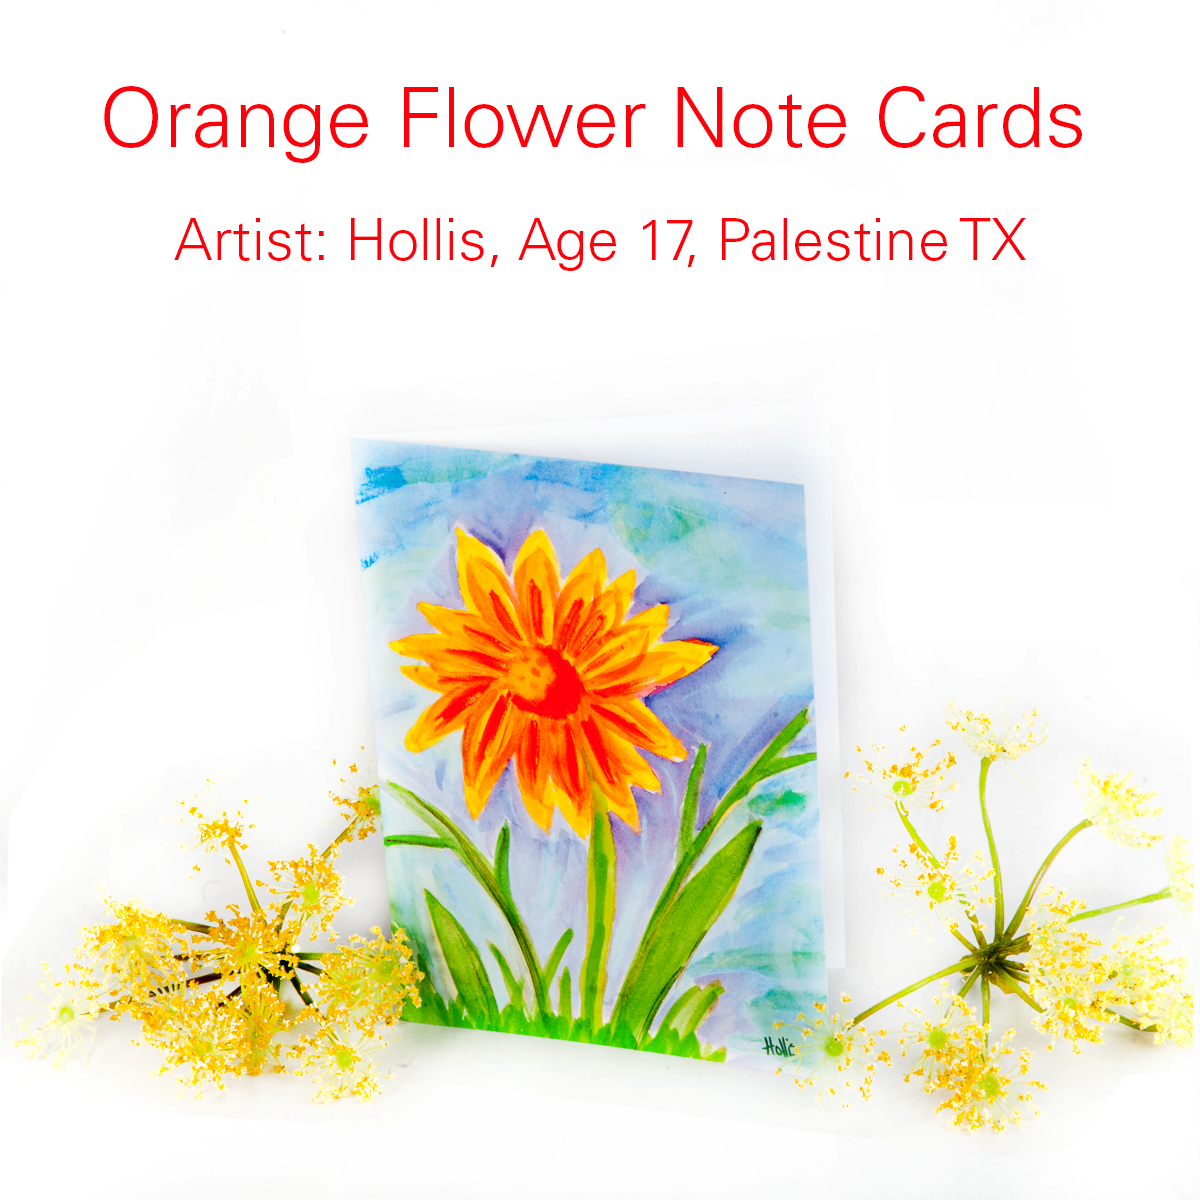 Send a friend some sunny cheer with the orange flower note card the the childrens art project offers merchandise inspired by the artwork of childrens cancer hospital patients at the university of texas m4hsunfo